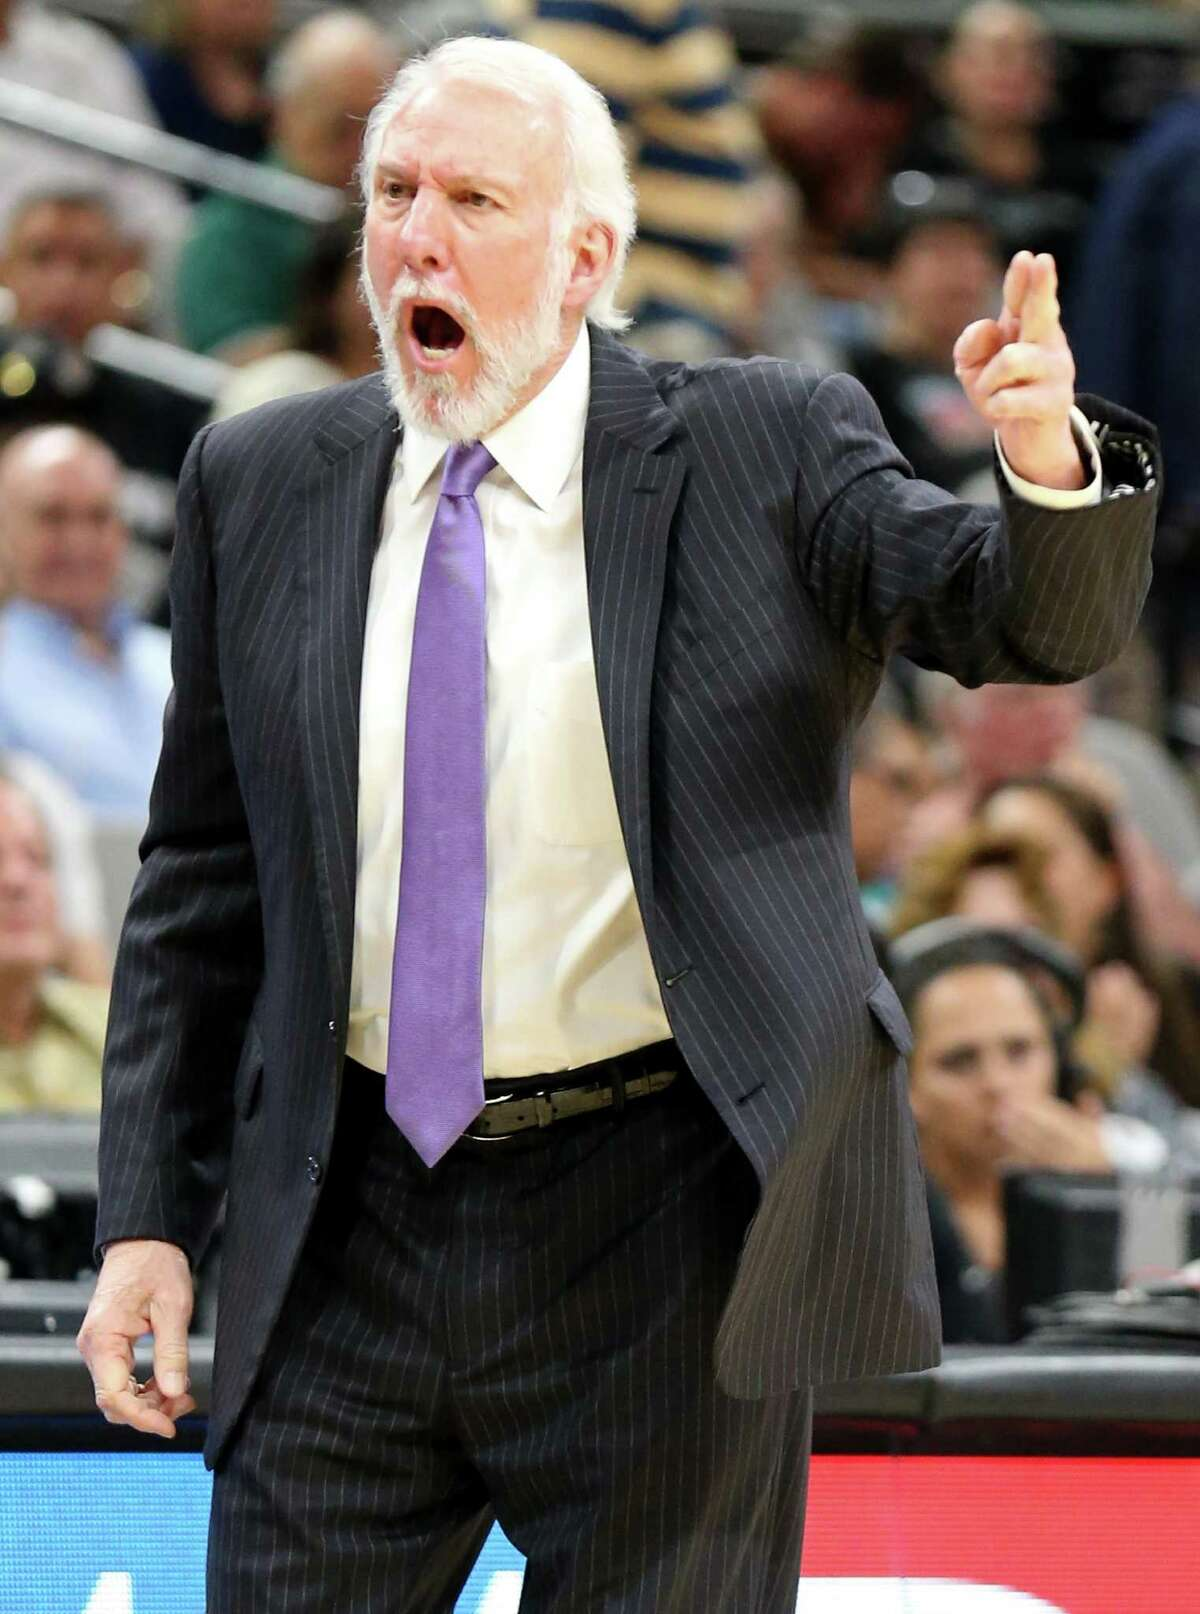 Gregg Popovich responds to reporter after he was asked a Donald Trump question while his team was in Mexico this week.